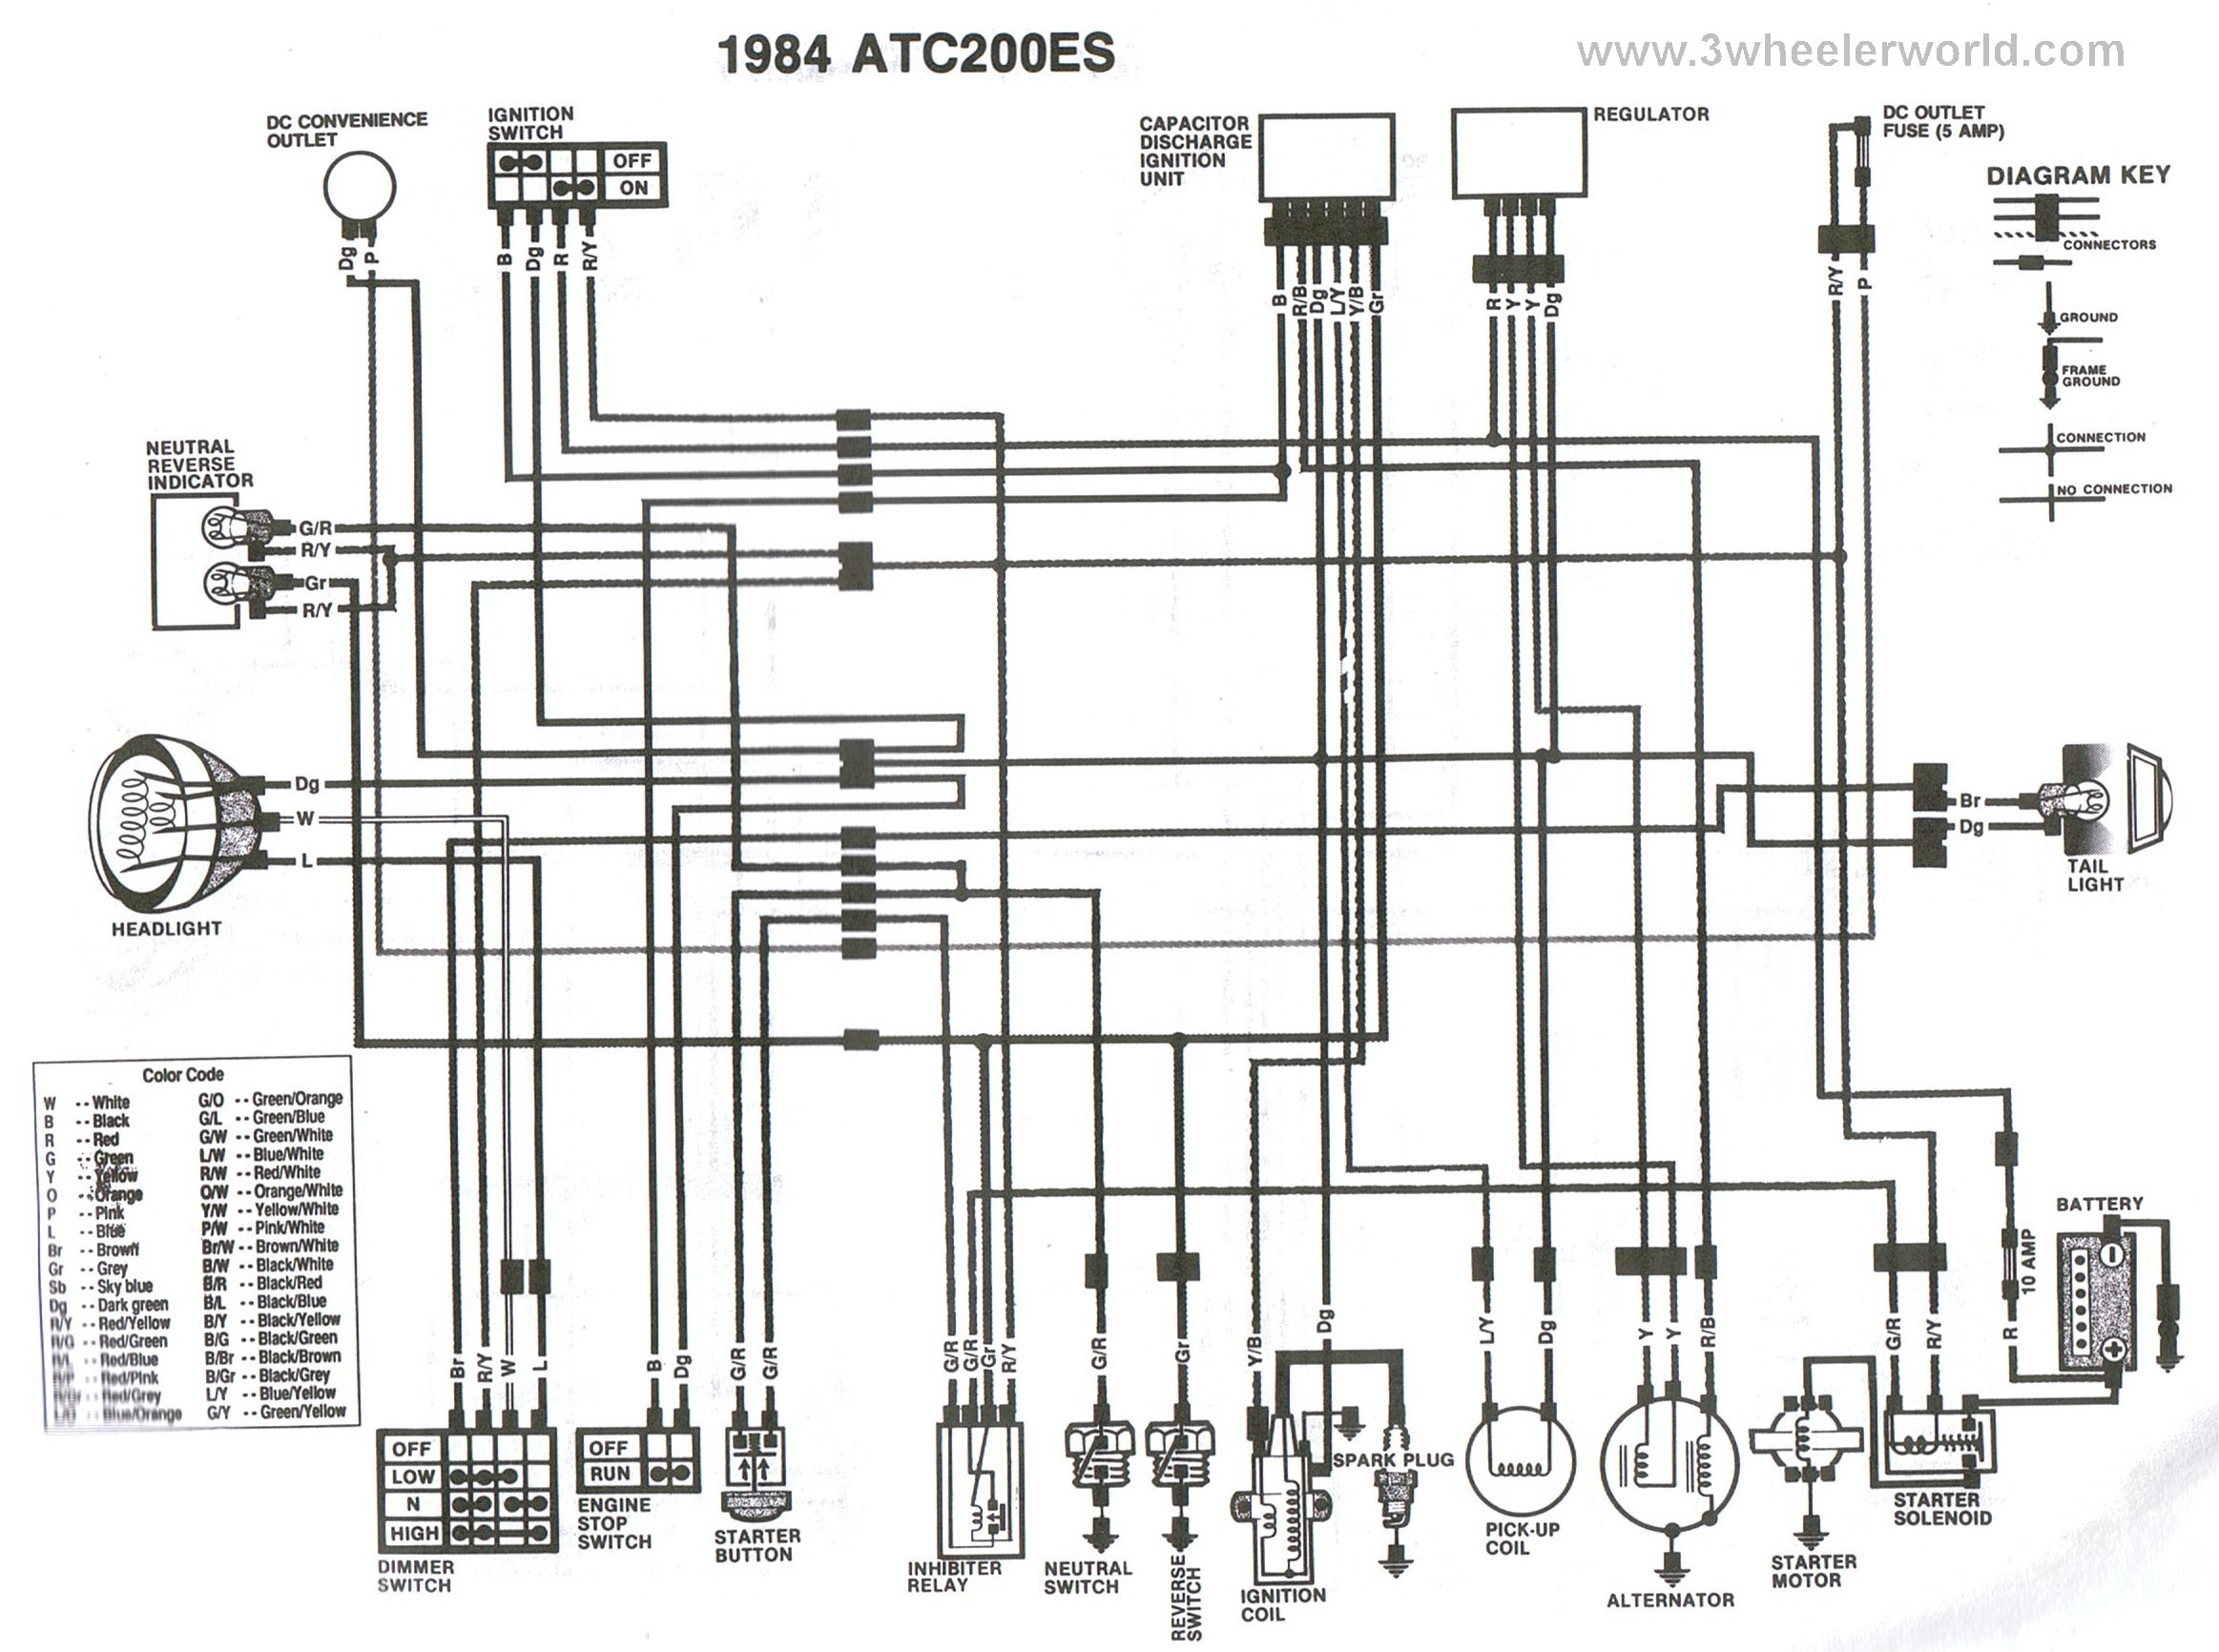 Atv Wiring Schematic additionally WiringHonda furthermore Honda 400ex Transmission Diagram as well Wiring Diagram For Honda Rancher 350 in addition 75126 Blob Removal Wiring 2. on trx 300ex wiring diagram